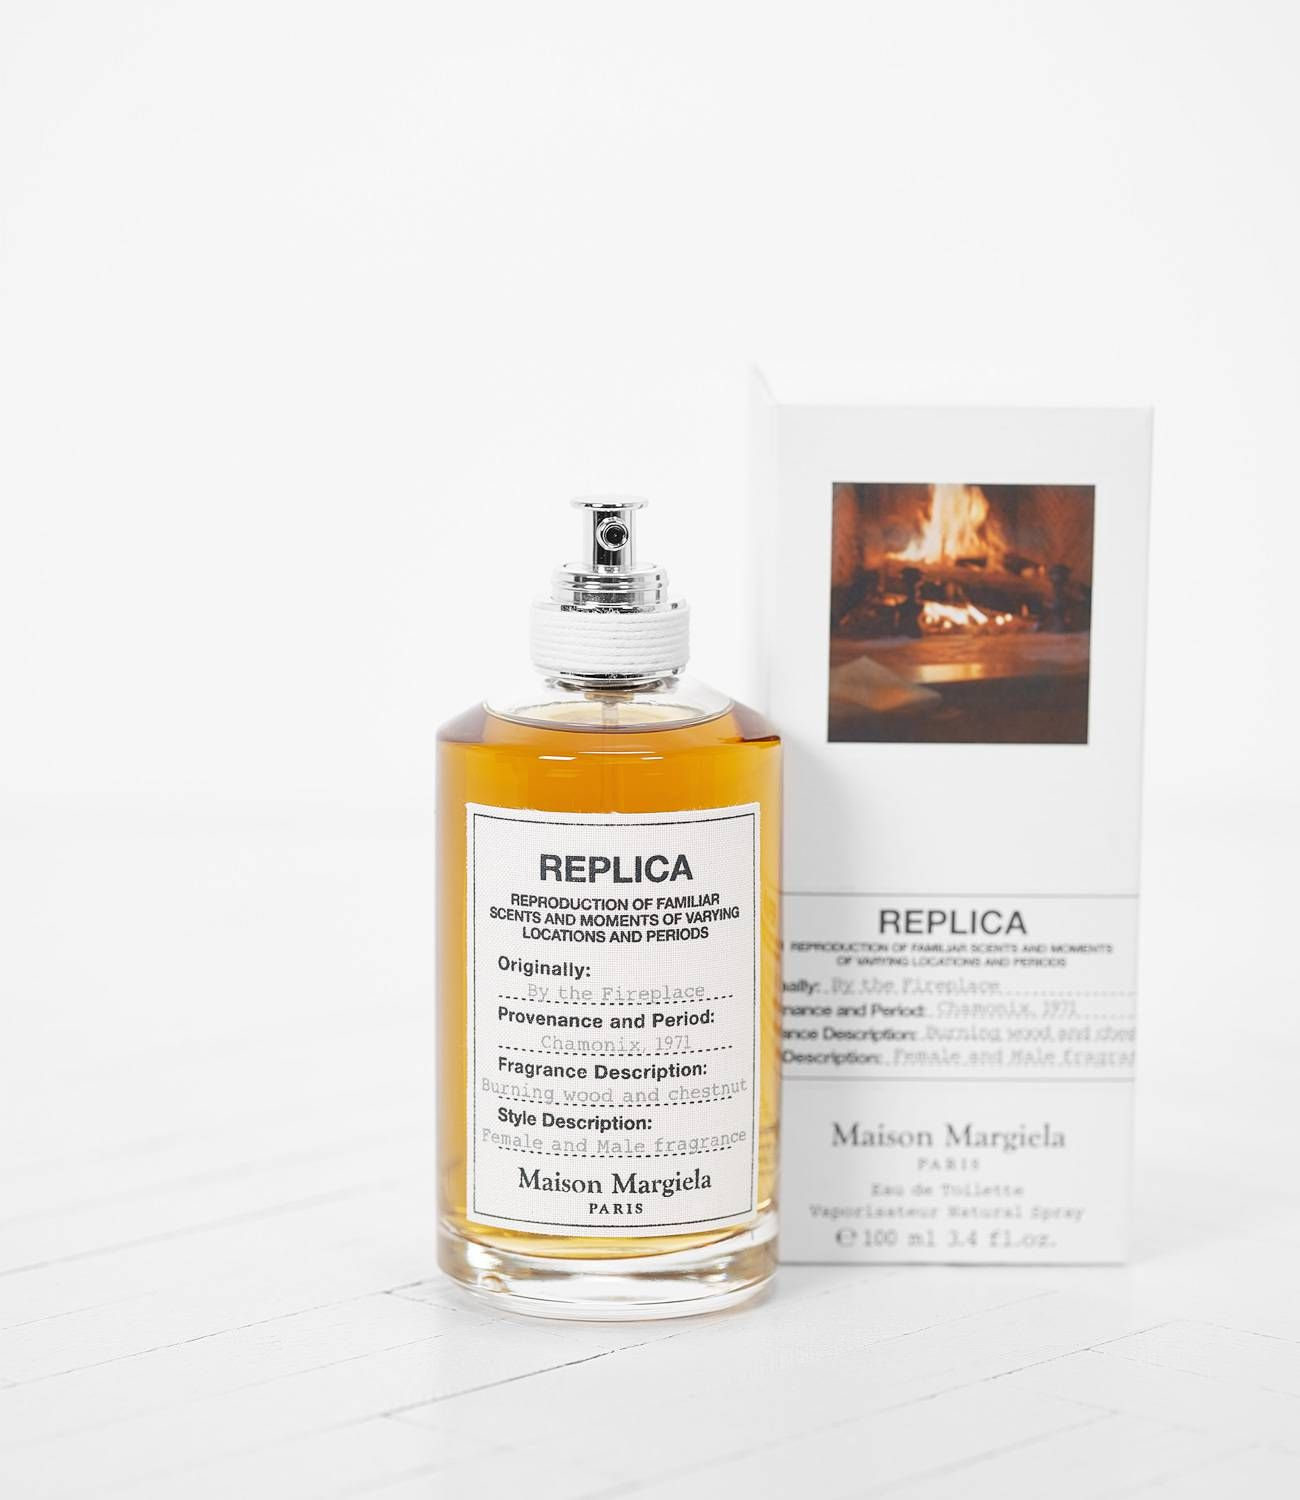 Replica Perfume by the Fireplace Awesome Replica by the Fireplace by Margiela Wishlist